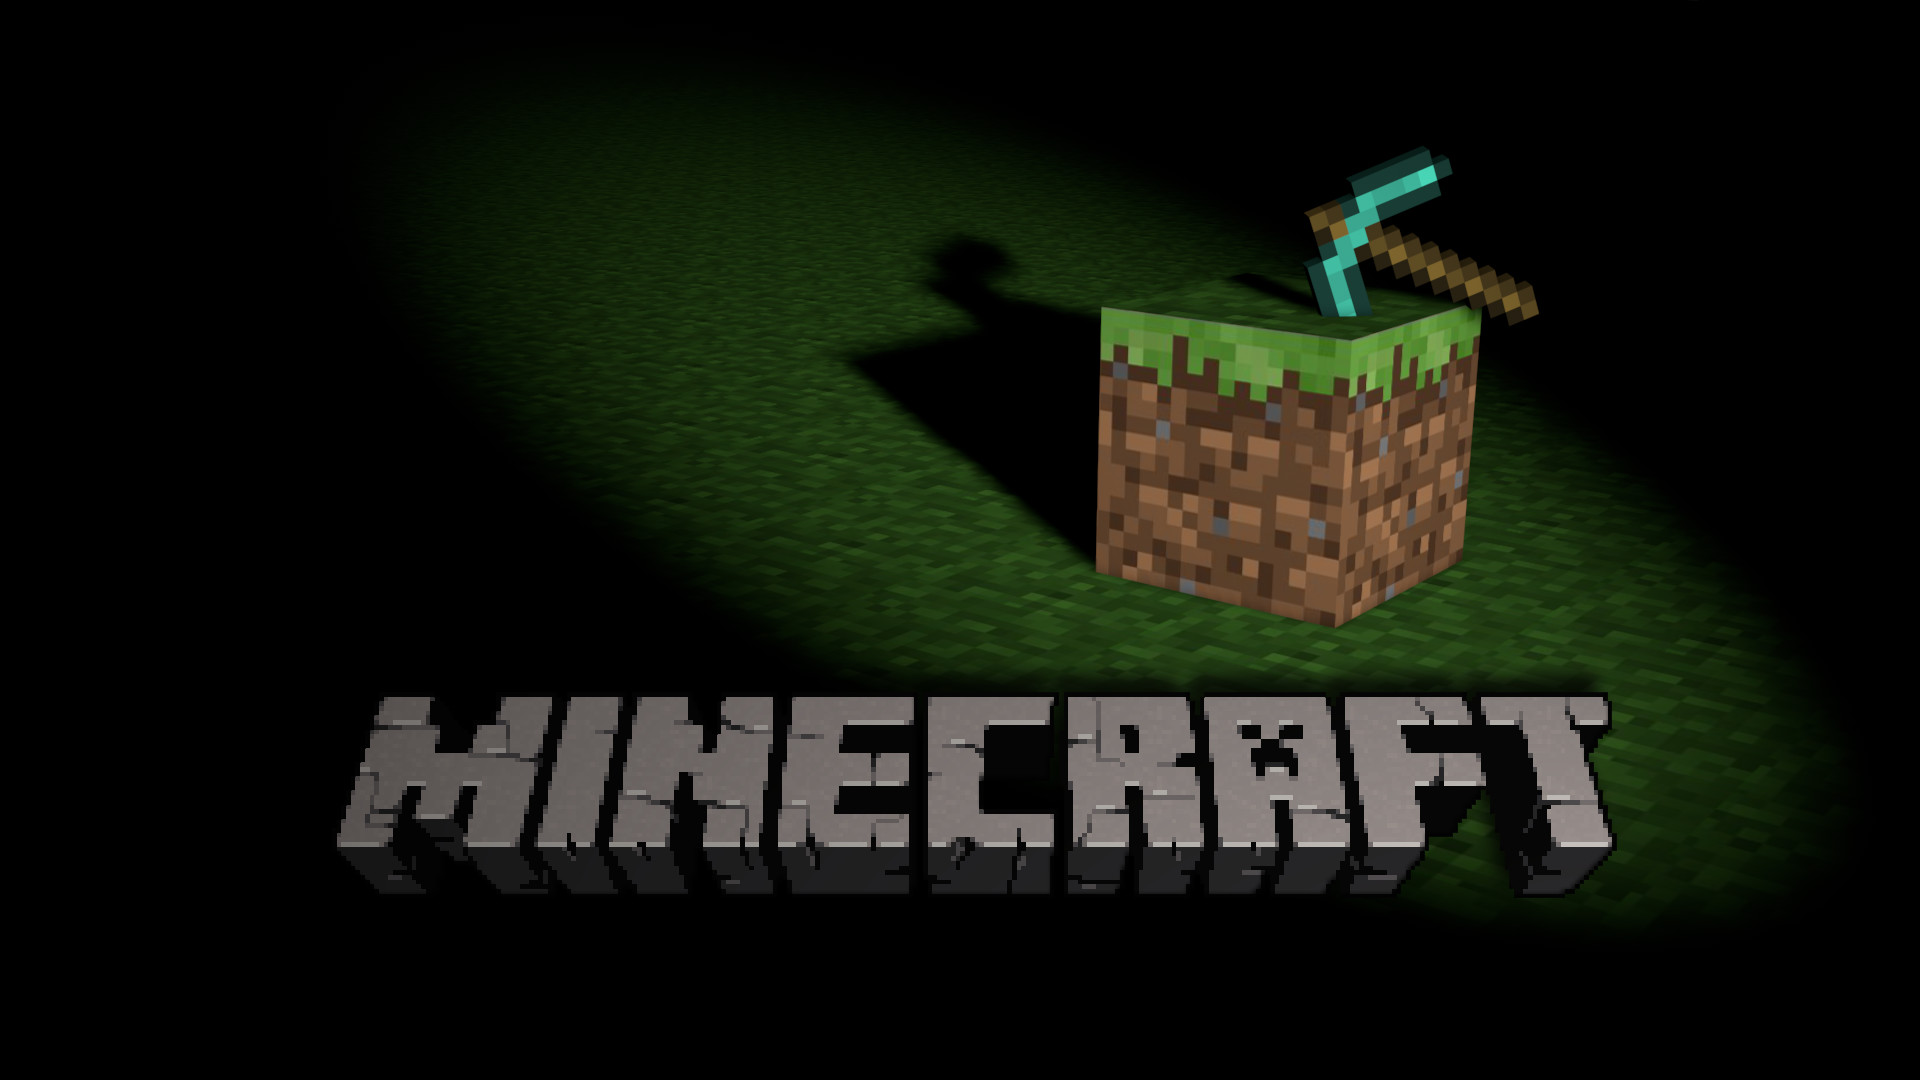 Res: 1920x1080, 6 Cool Minecraft Backgrounds for Your Phone